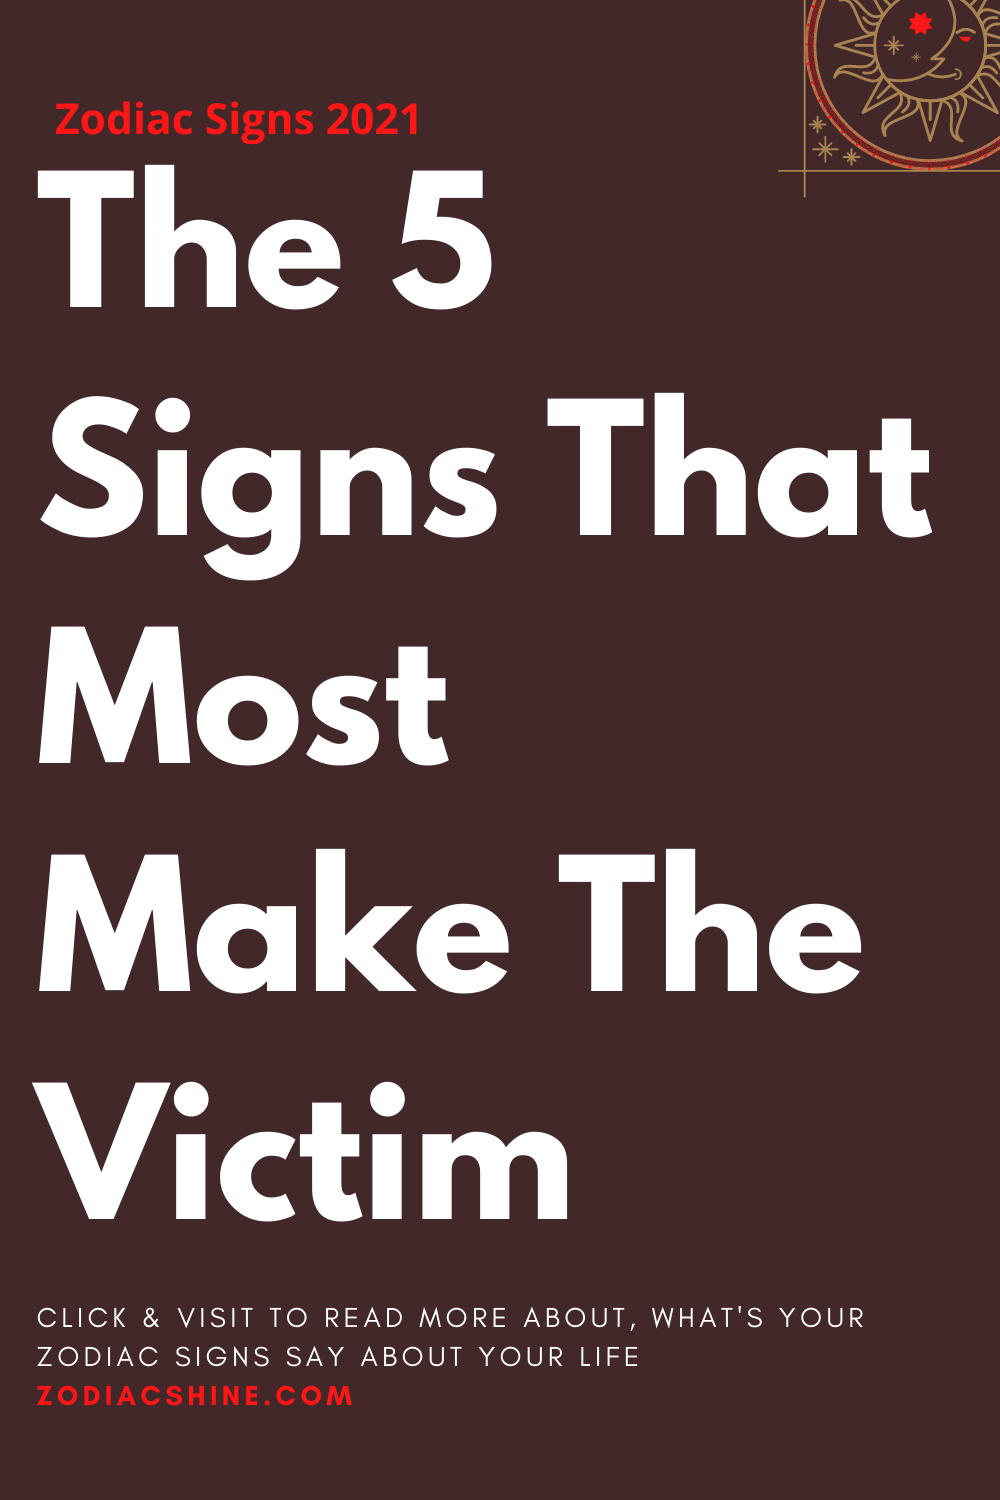 The 5 Signs That Most Make The Victim